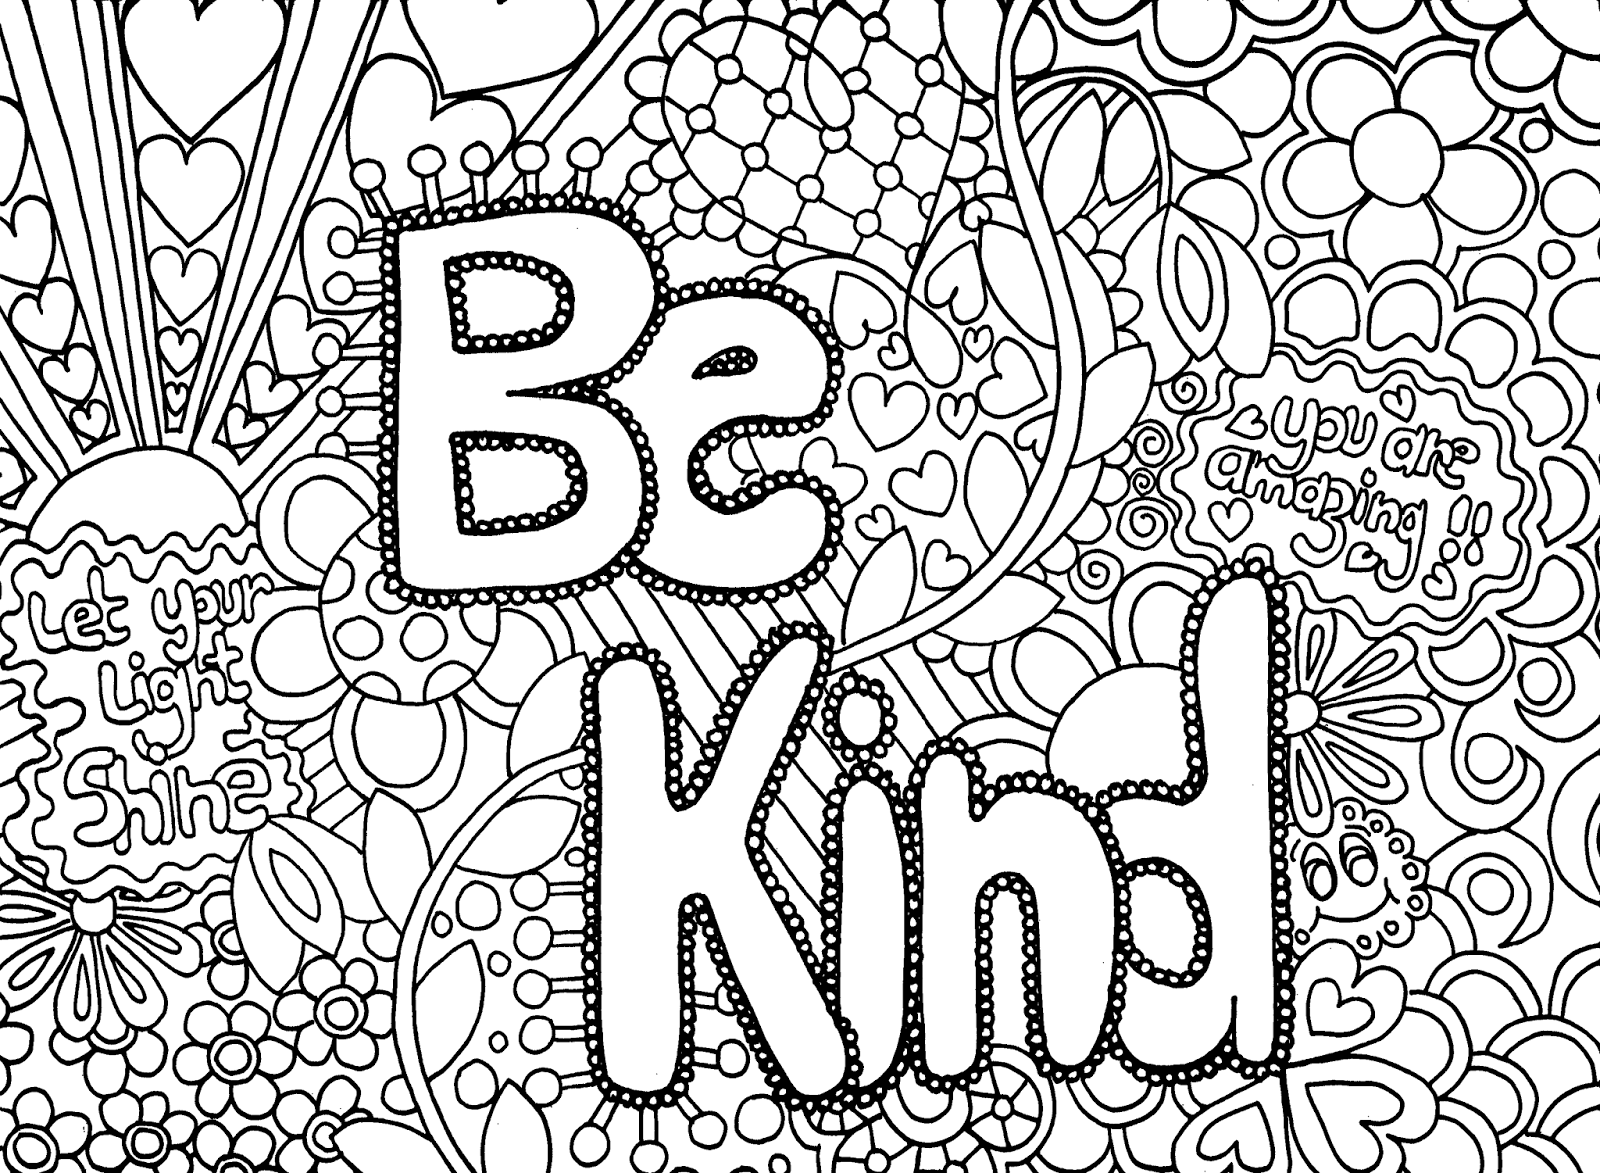 coloring pages for kids hard coloring pages for adults difficult animals 7 coloring kids hard coloring pages for